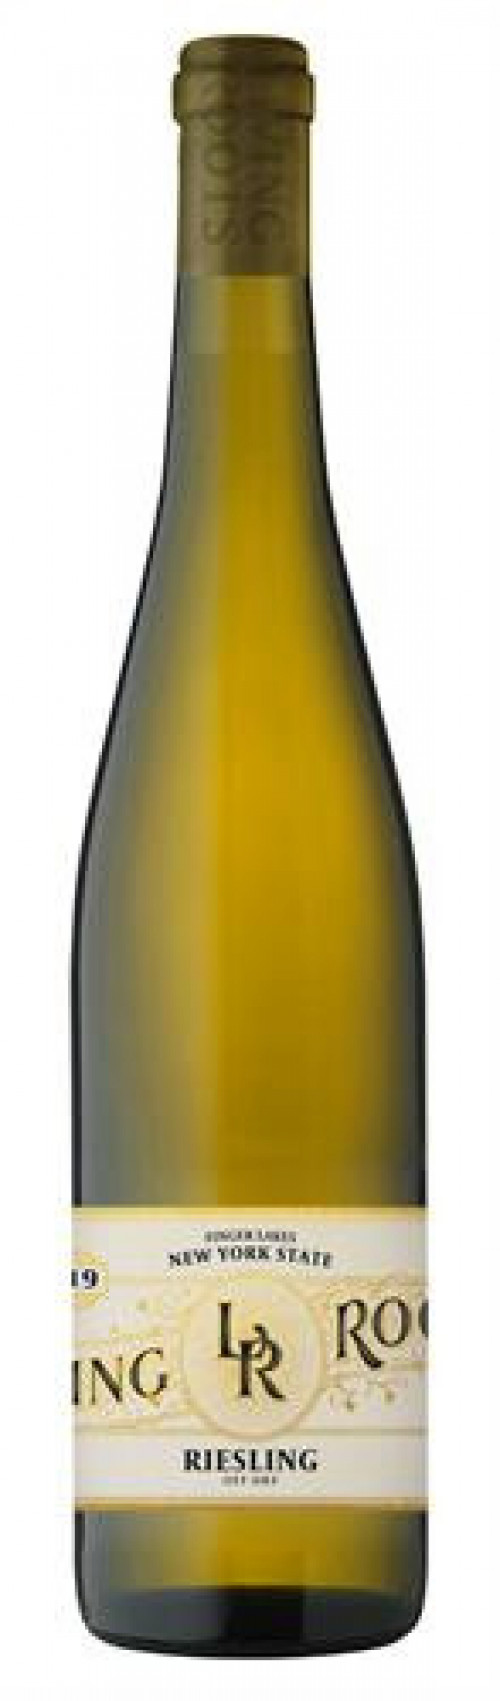 2019 Living Roots Off-Dry Riesling 750ml